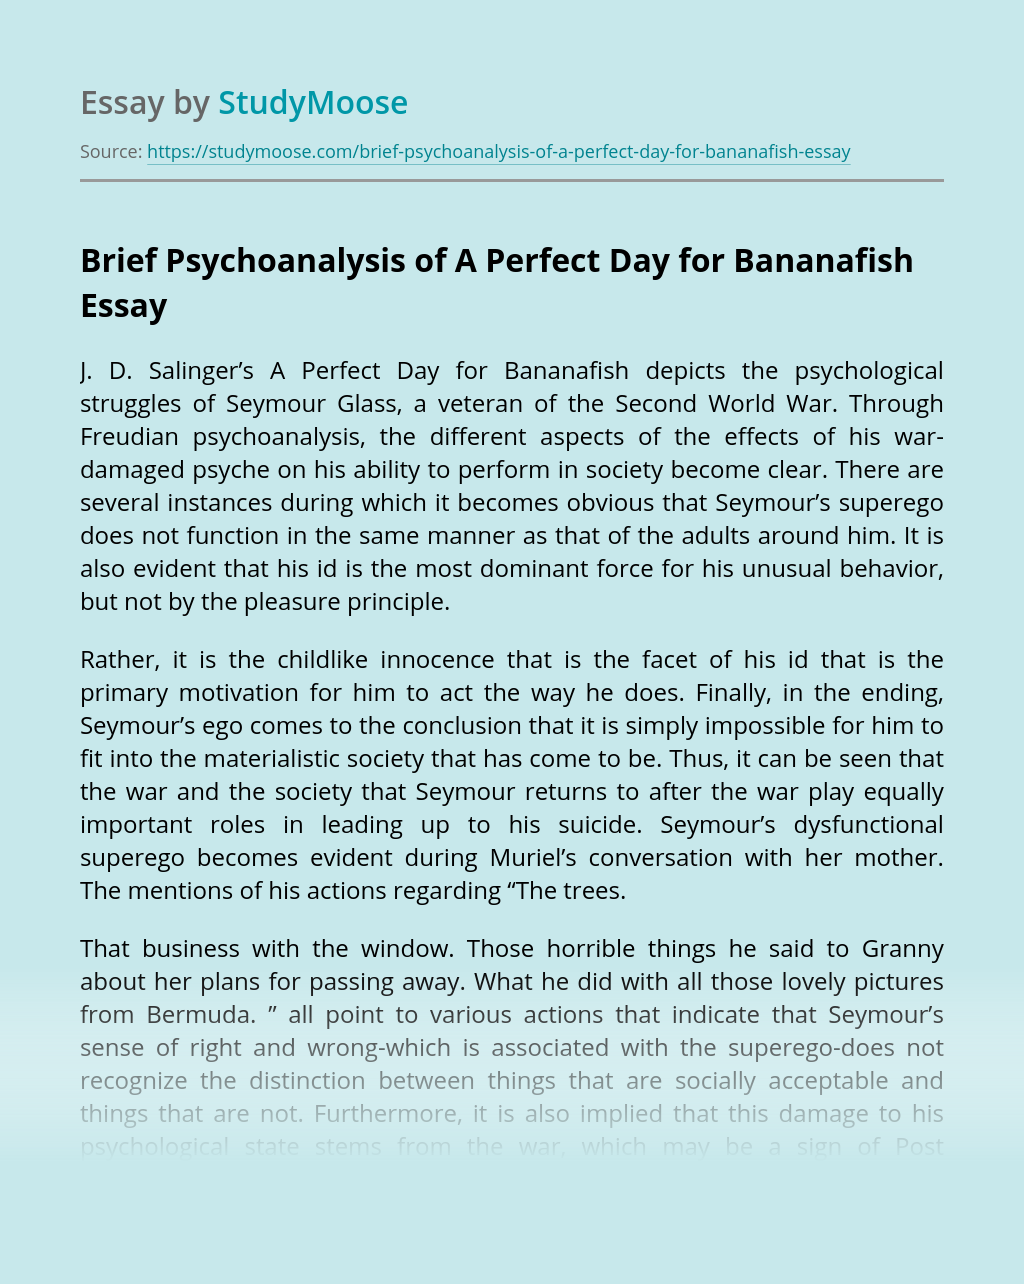 Brief Psychoanalysis of A Perfect Day for Bananafish